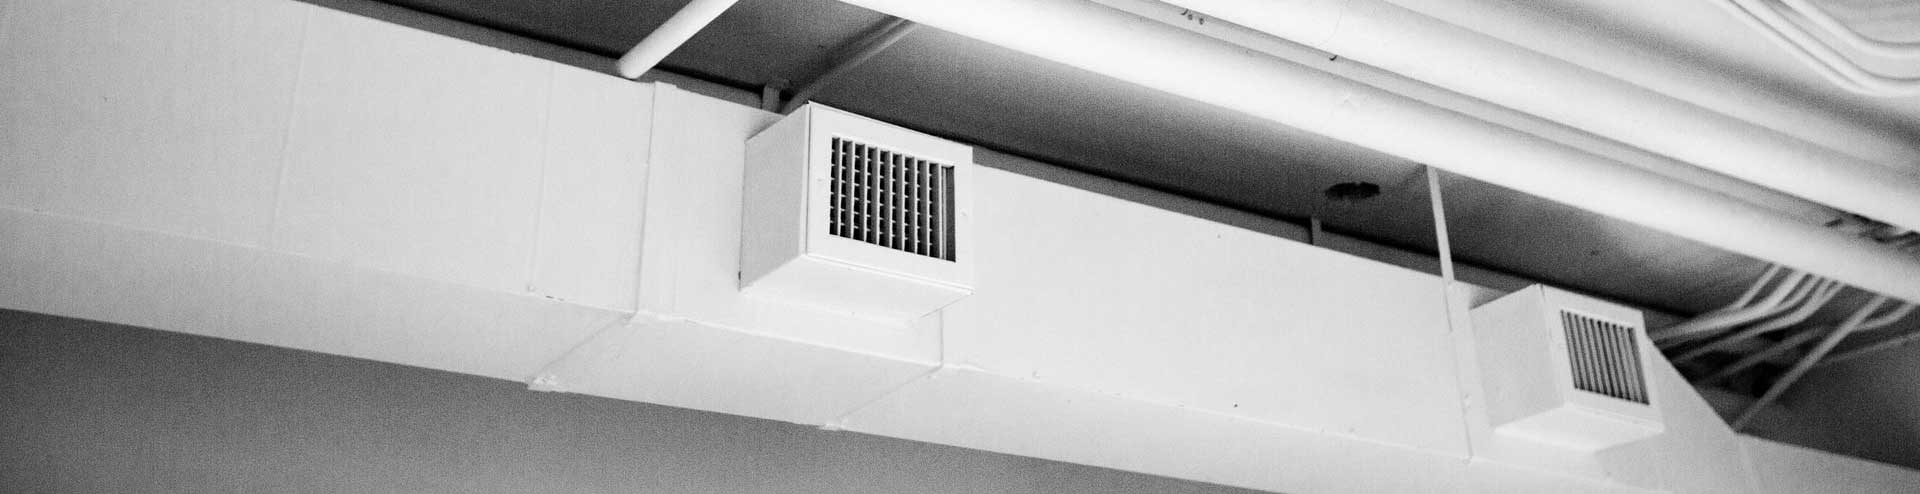 commercial-air-ducts